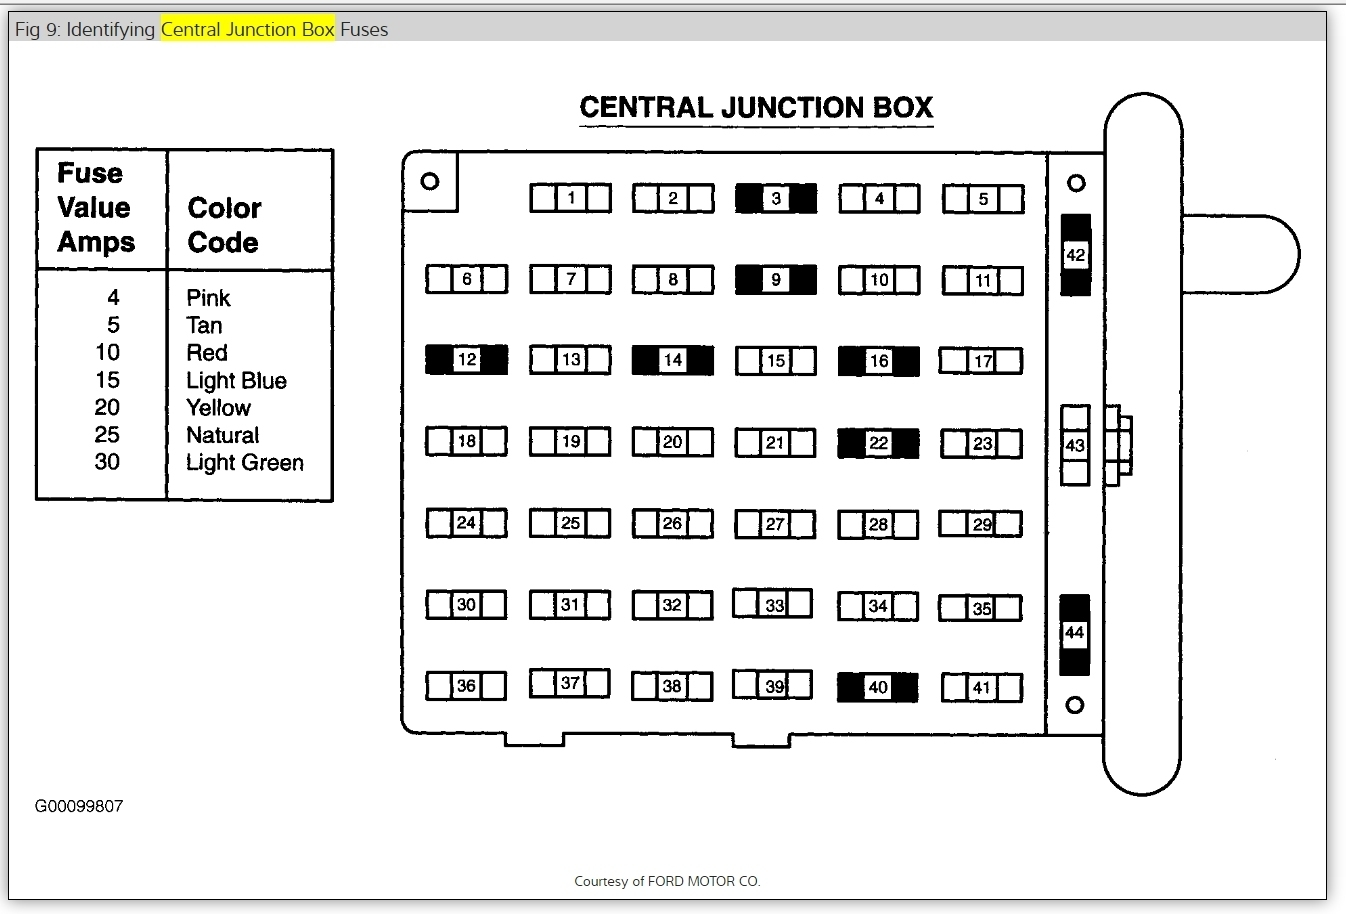 1996 Mustang Fuse Box Schema Wiring Diagram Online 2002 Ford Mustang Gt  Under The Dash Fuse Box Diagram